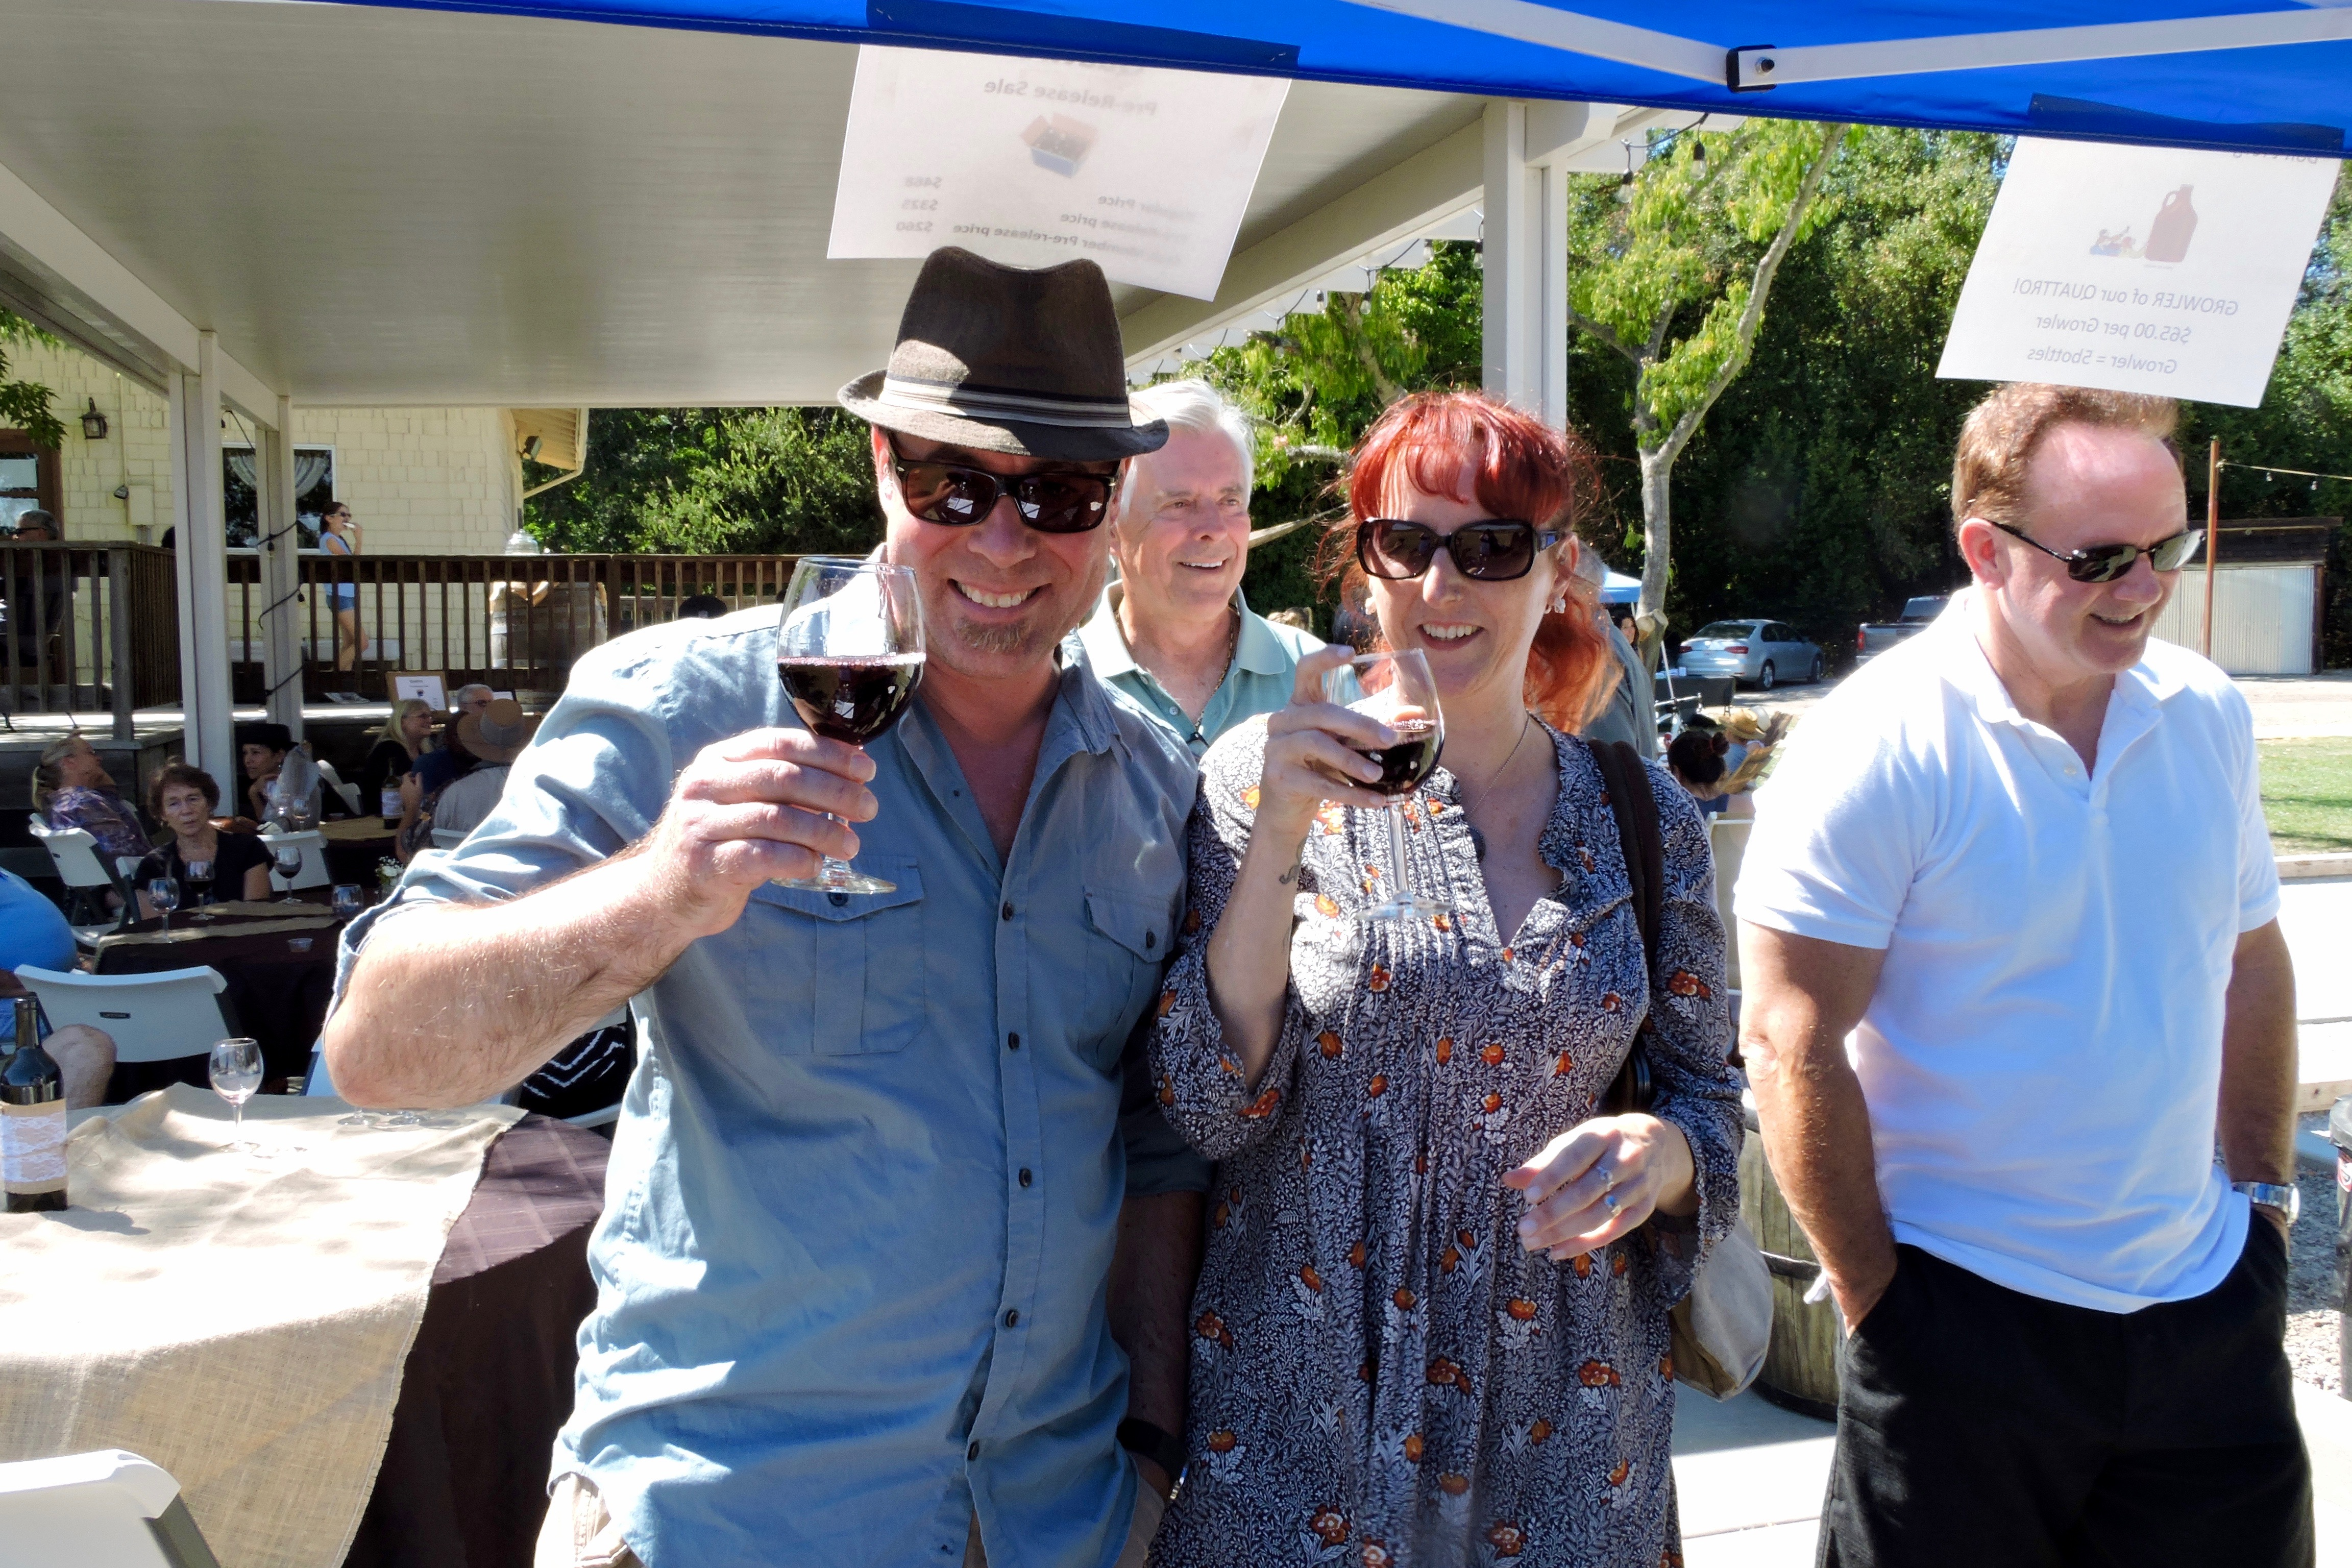 Wine tasting, bocce ball and live music were featured at BackRoad Vines.